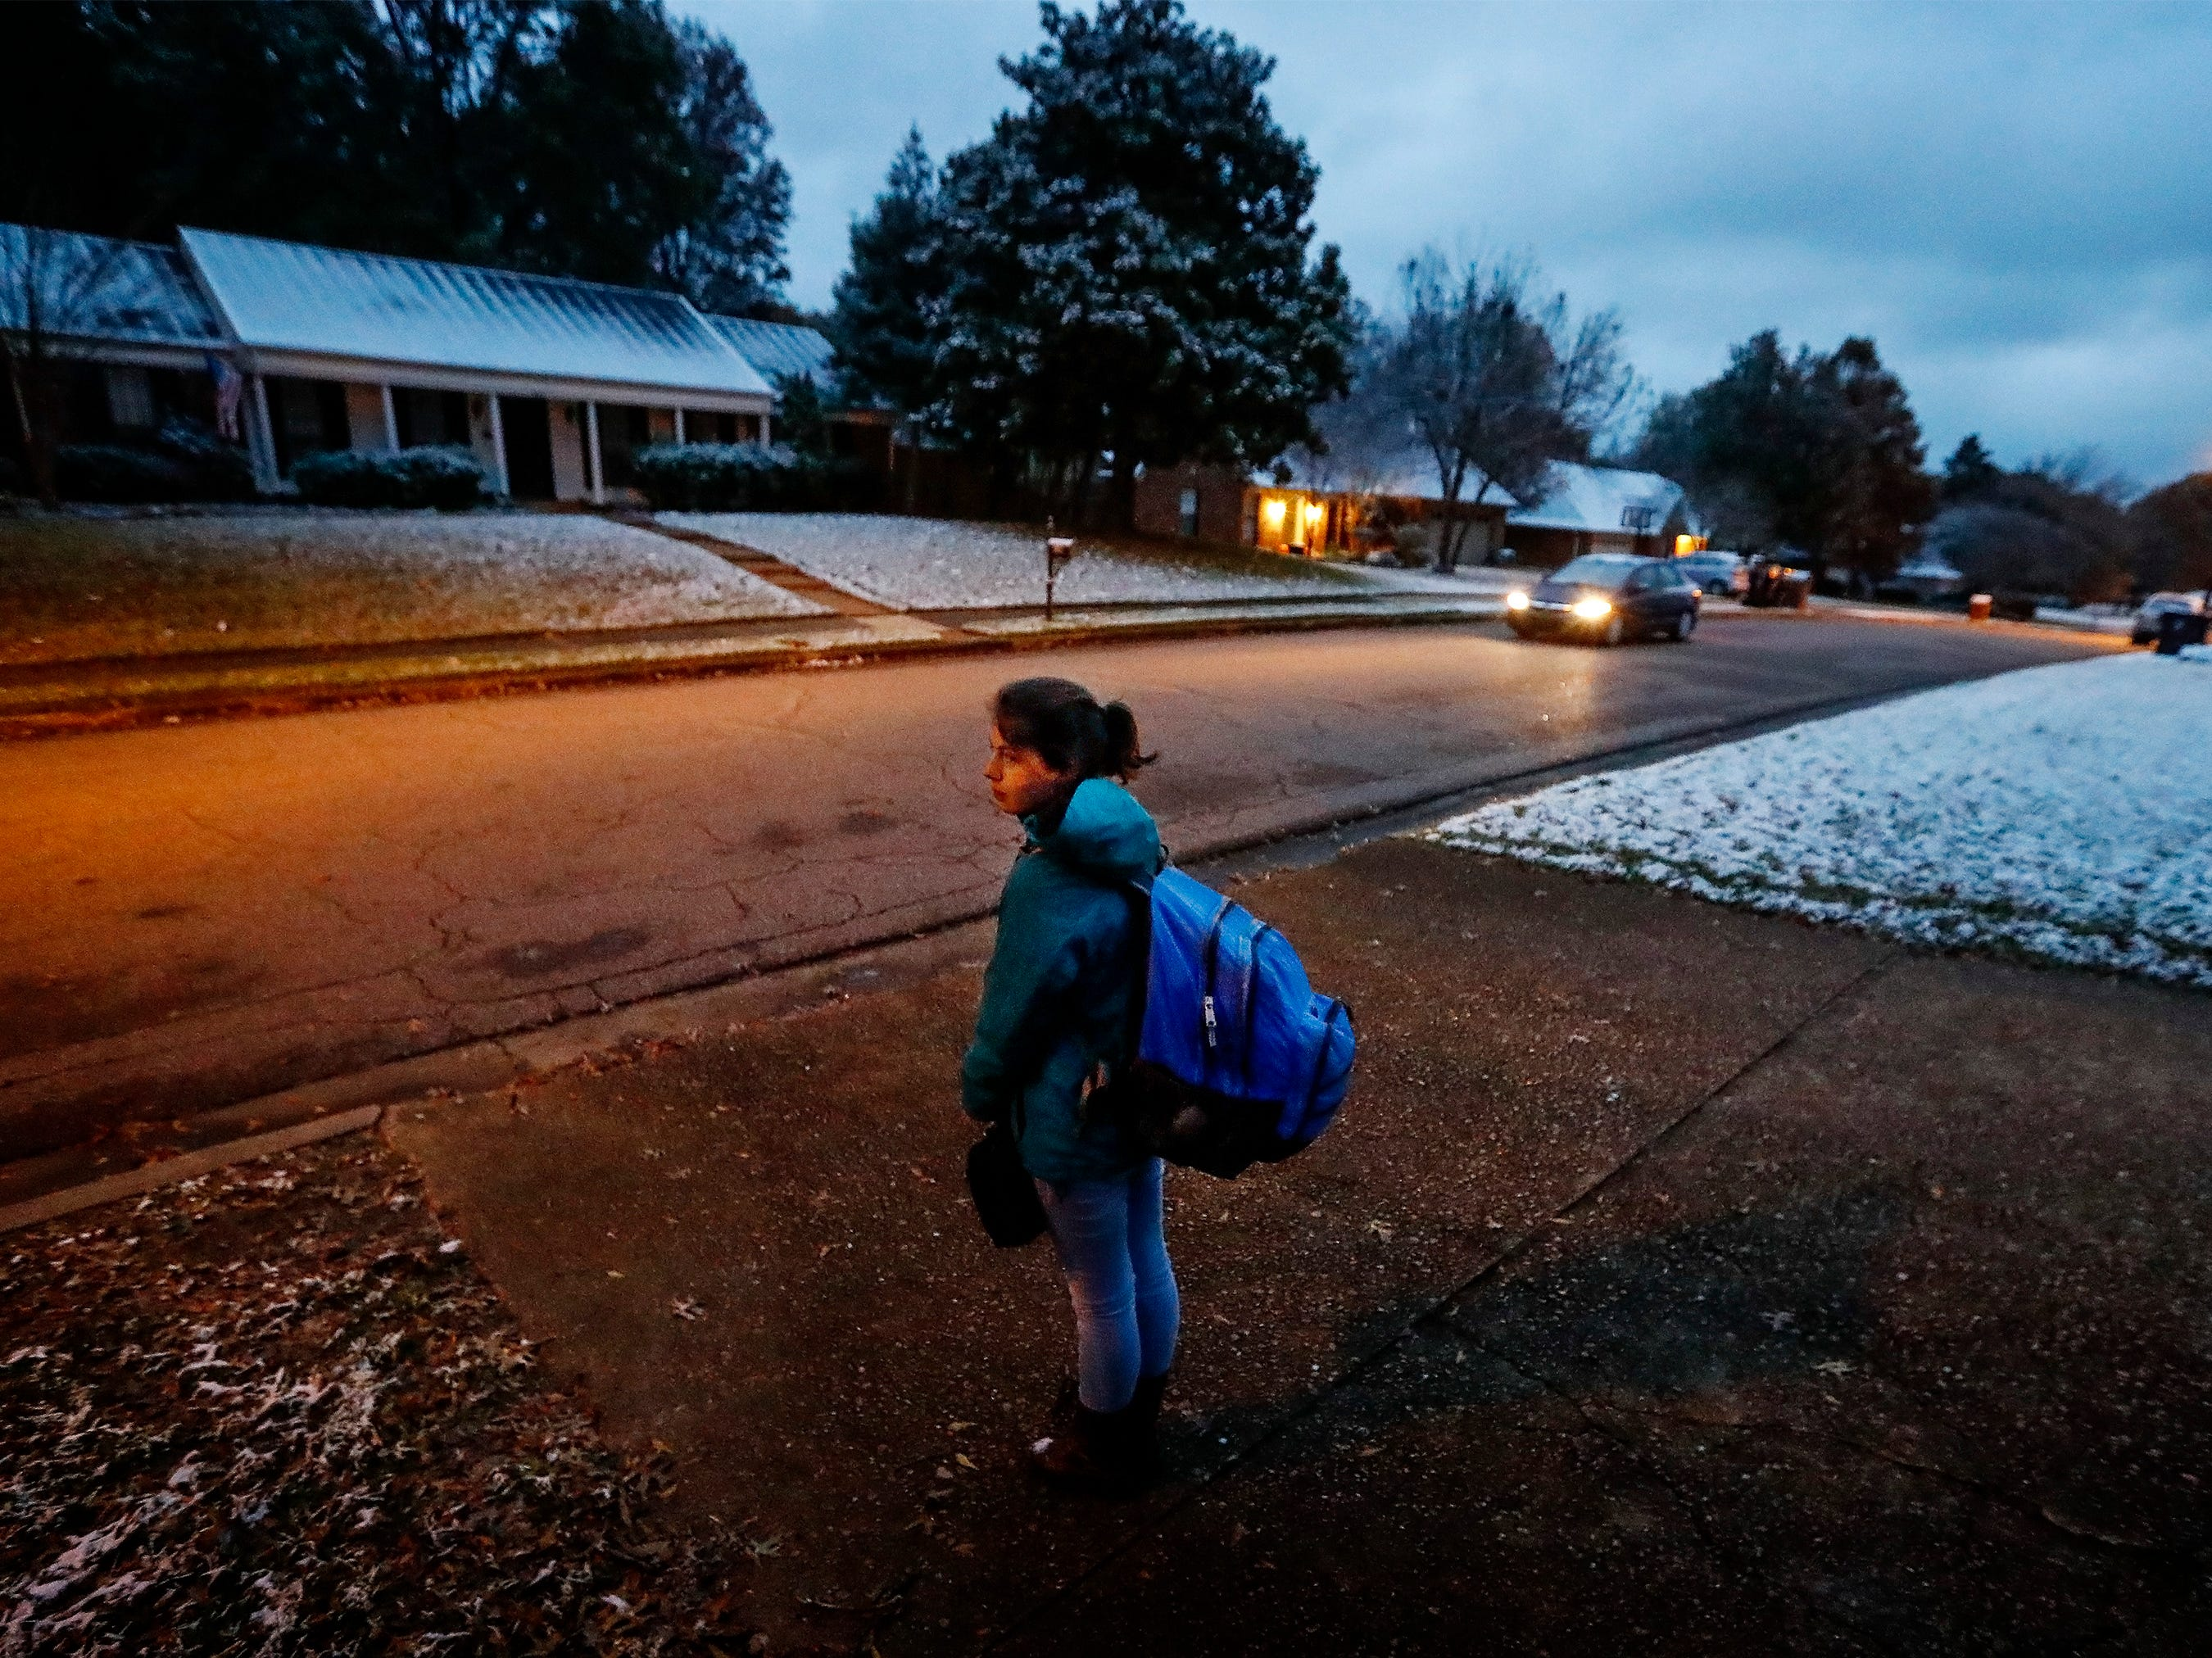 Collierville High School student Casey Hanauer,16, waits for a school bus at 6:09 a.m. in her neighborhood Thursday morning. Collierville parents want the school times to start later and the Collierville School District formed a committee to explore the possible benefits and impact the change in time would have on students.